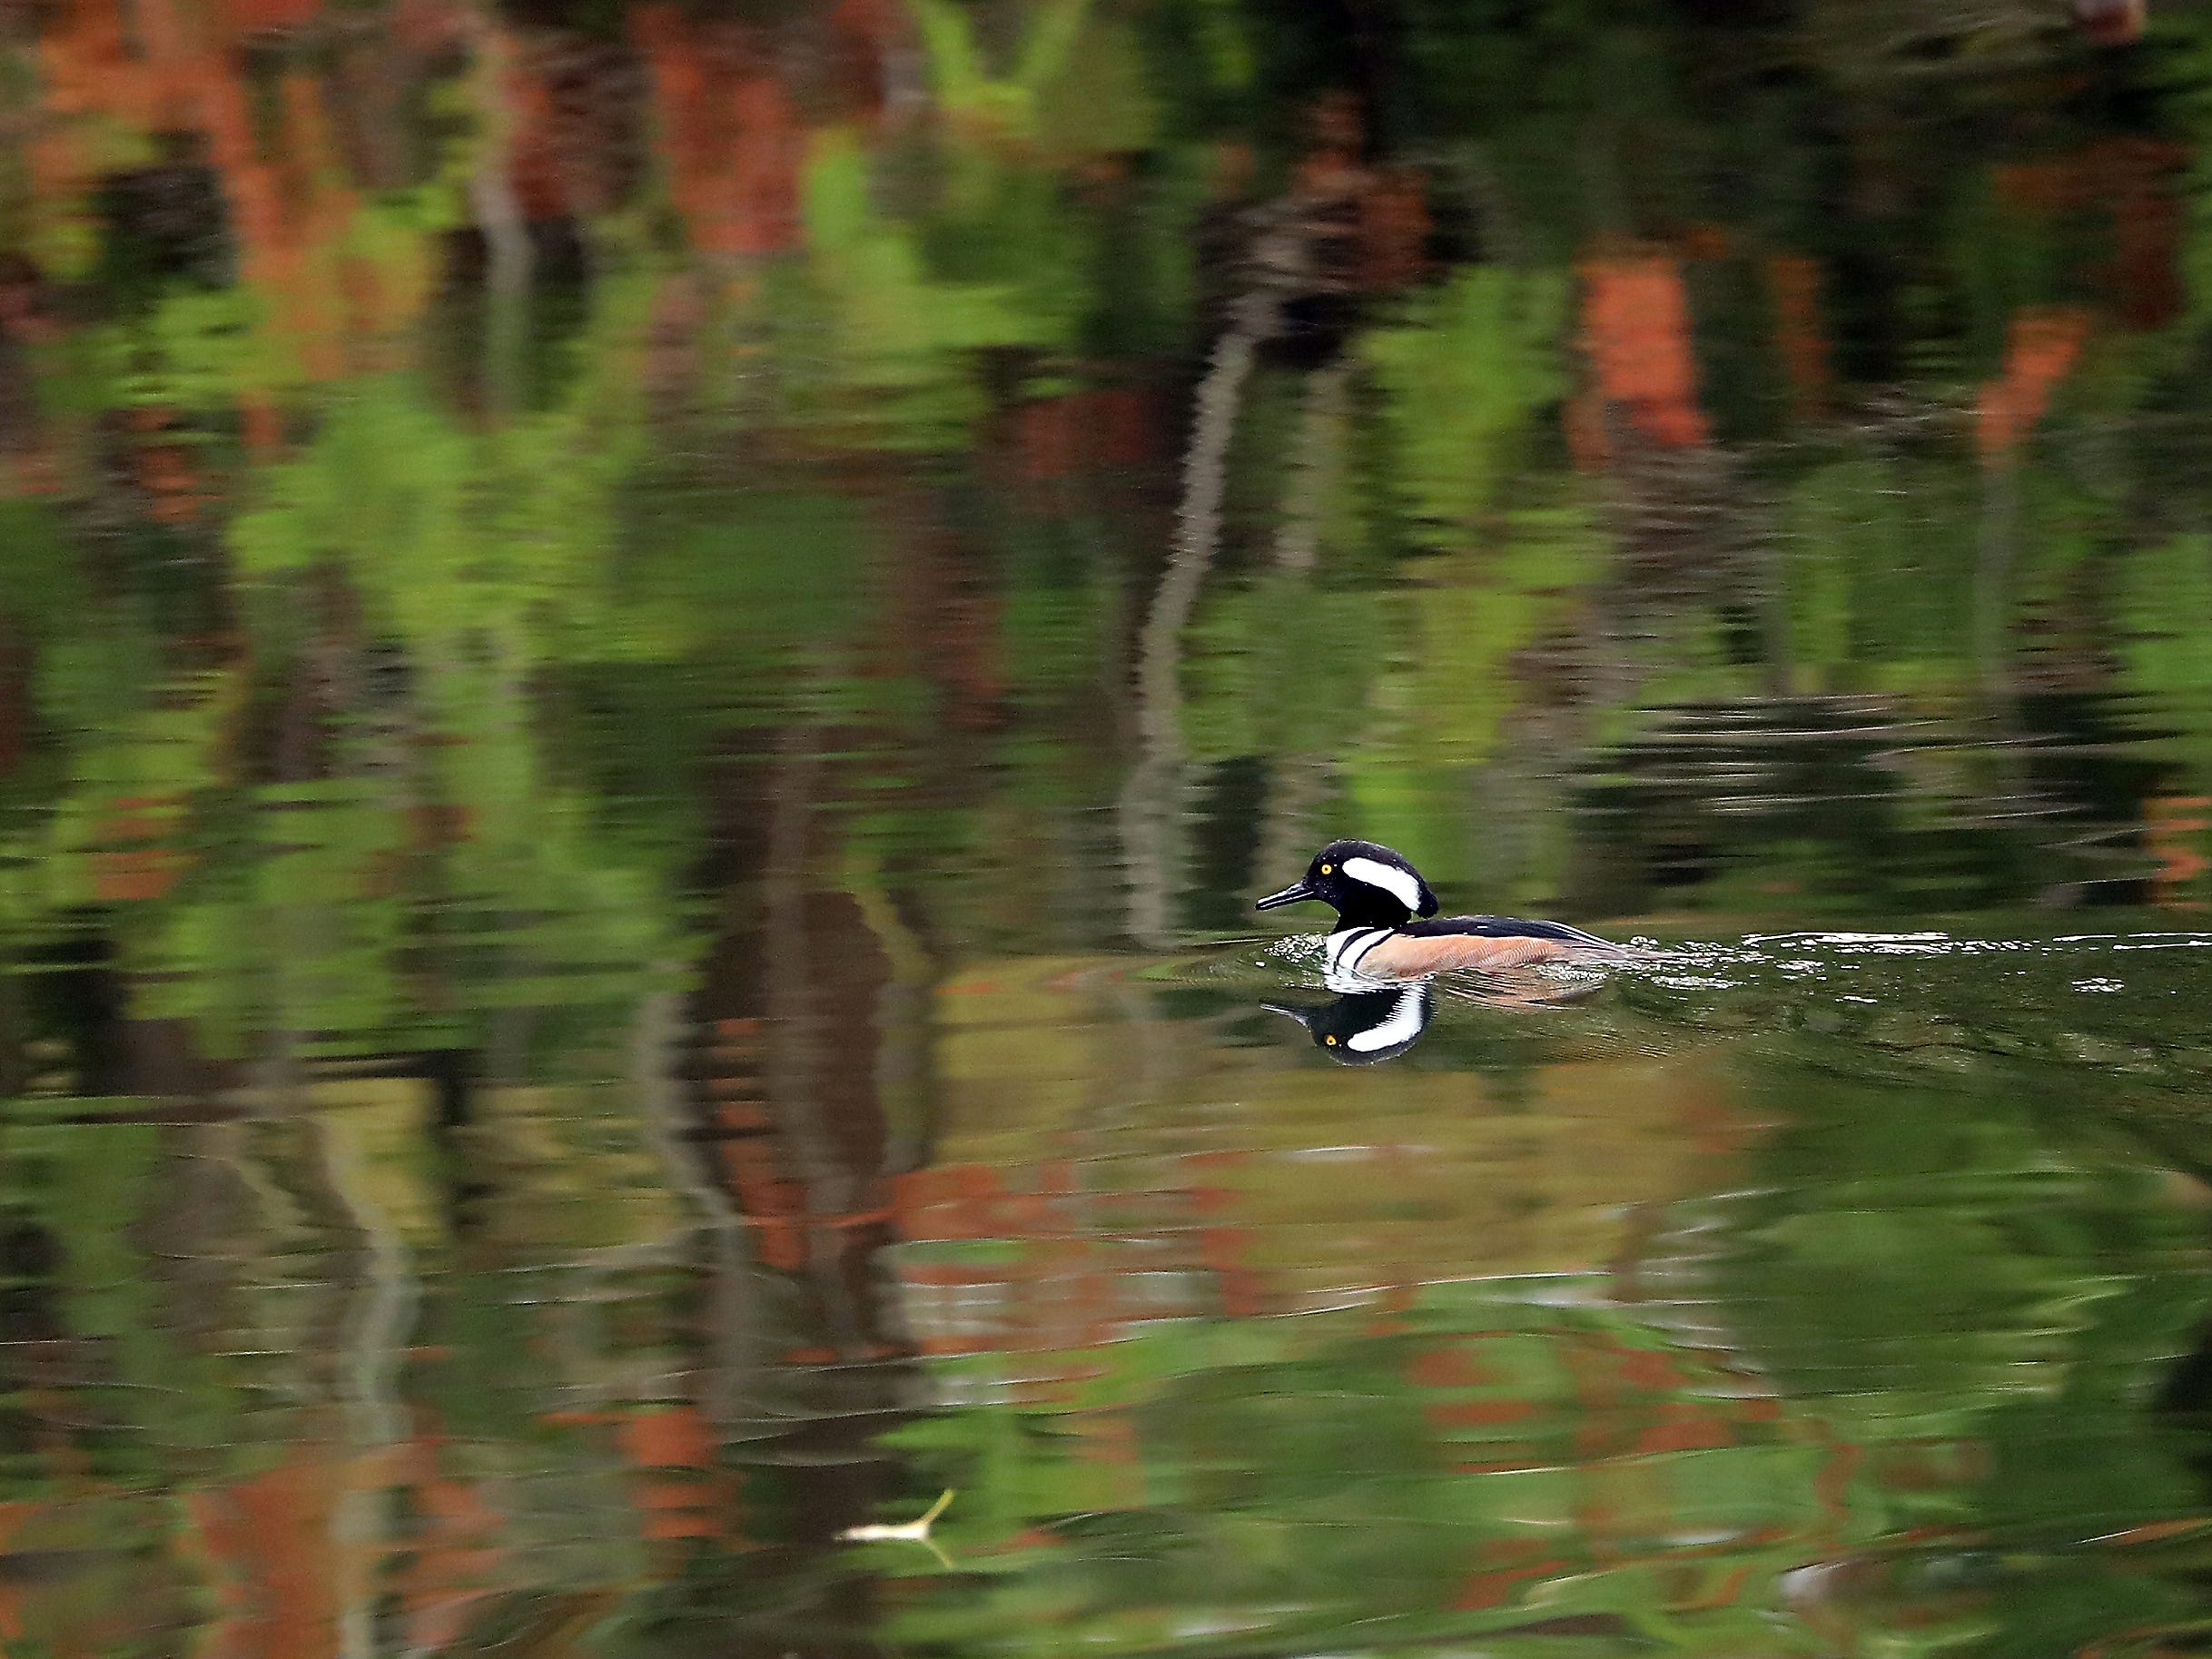 A hooded merganser paddles through the reflective waters of the Seabeck Conference Center lagoon on Thursday, November 8, 2018.